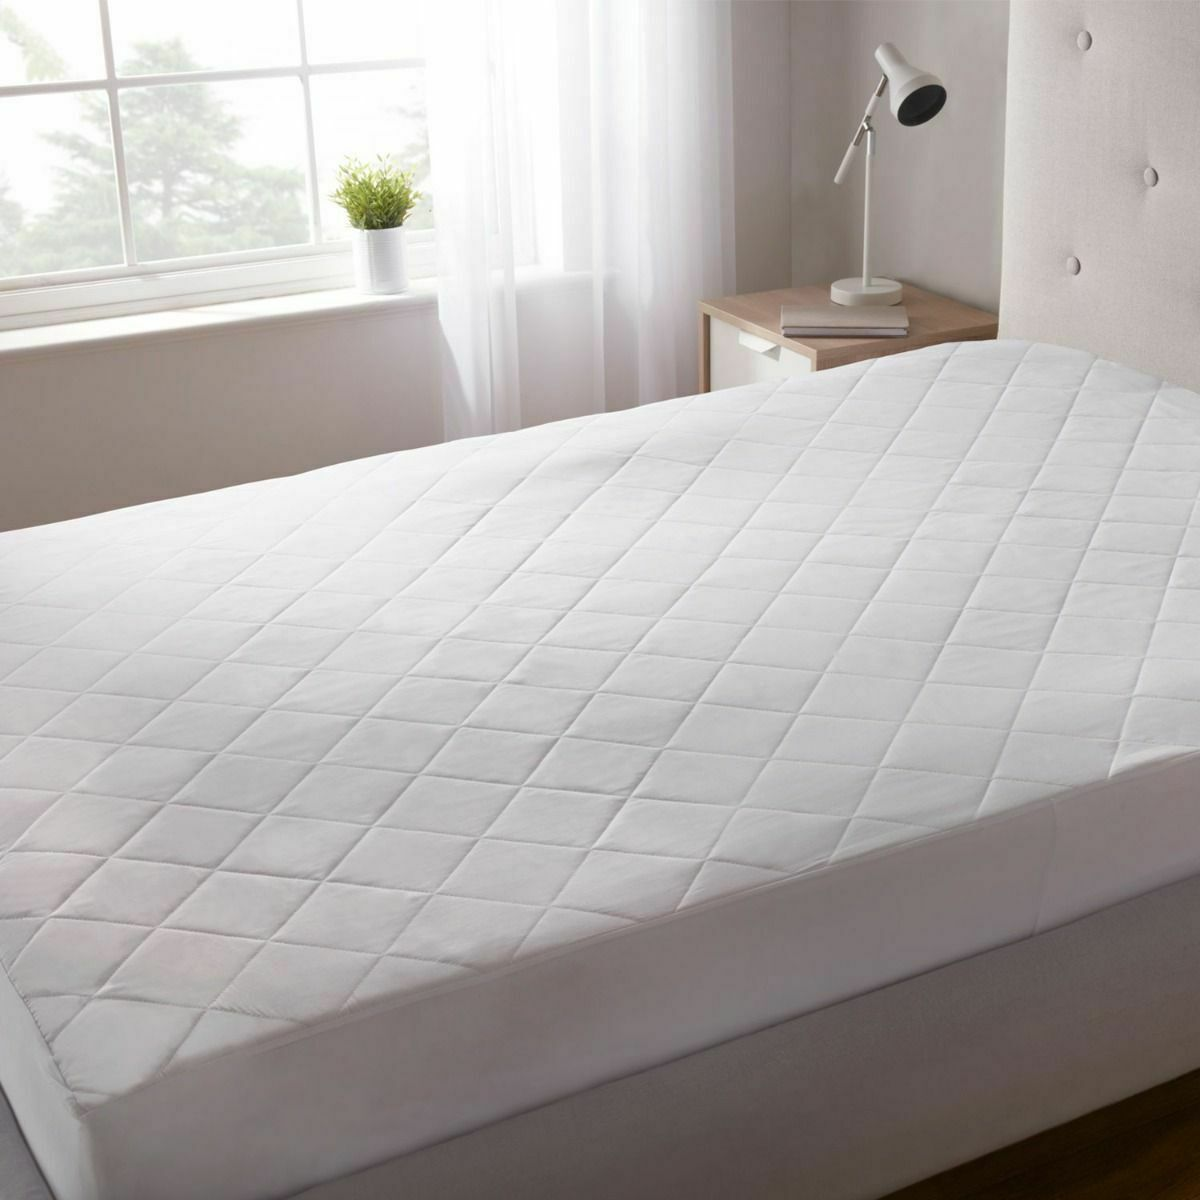 KING SIZE BED WETTING VINYL PLASTIC FITTED MATTRESS COVER SHEET PROTECTOR HLU